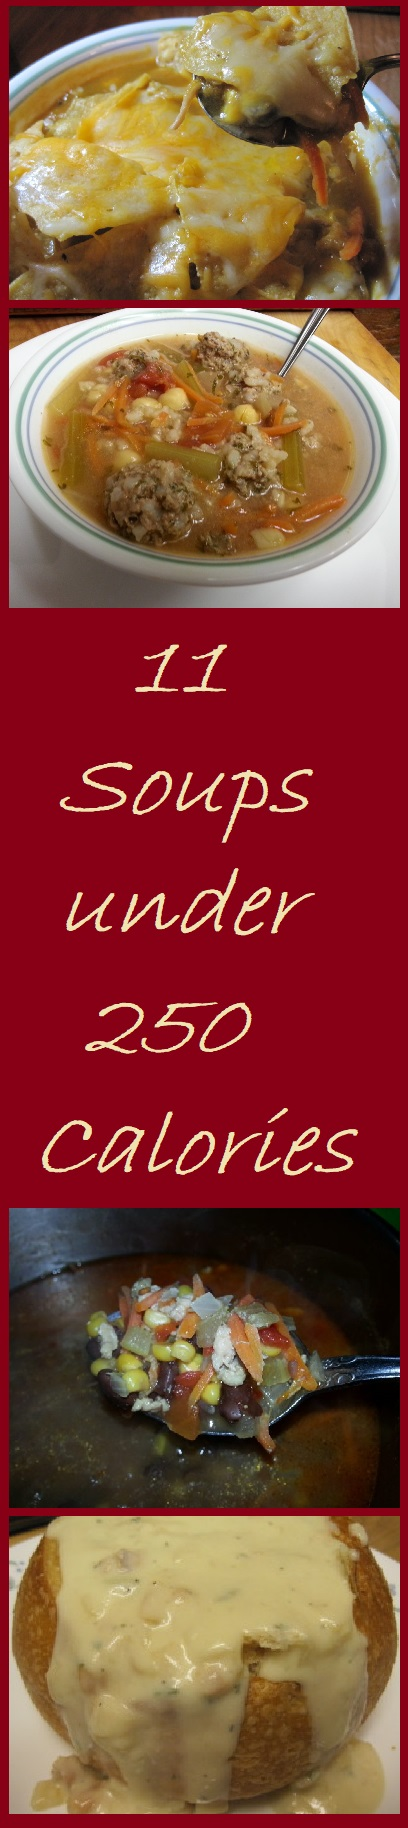 11 Soups under 250 Calories--These soups prove that you can cut calories without sacrificing flavor.